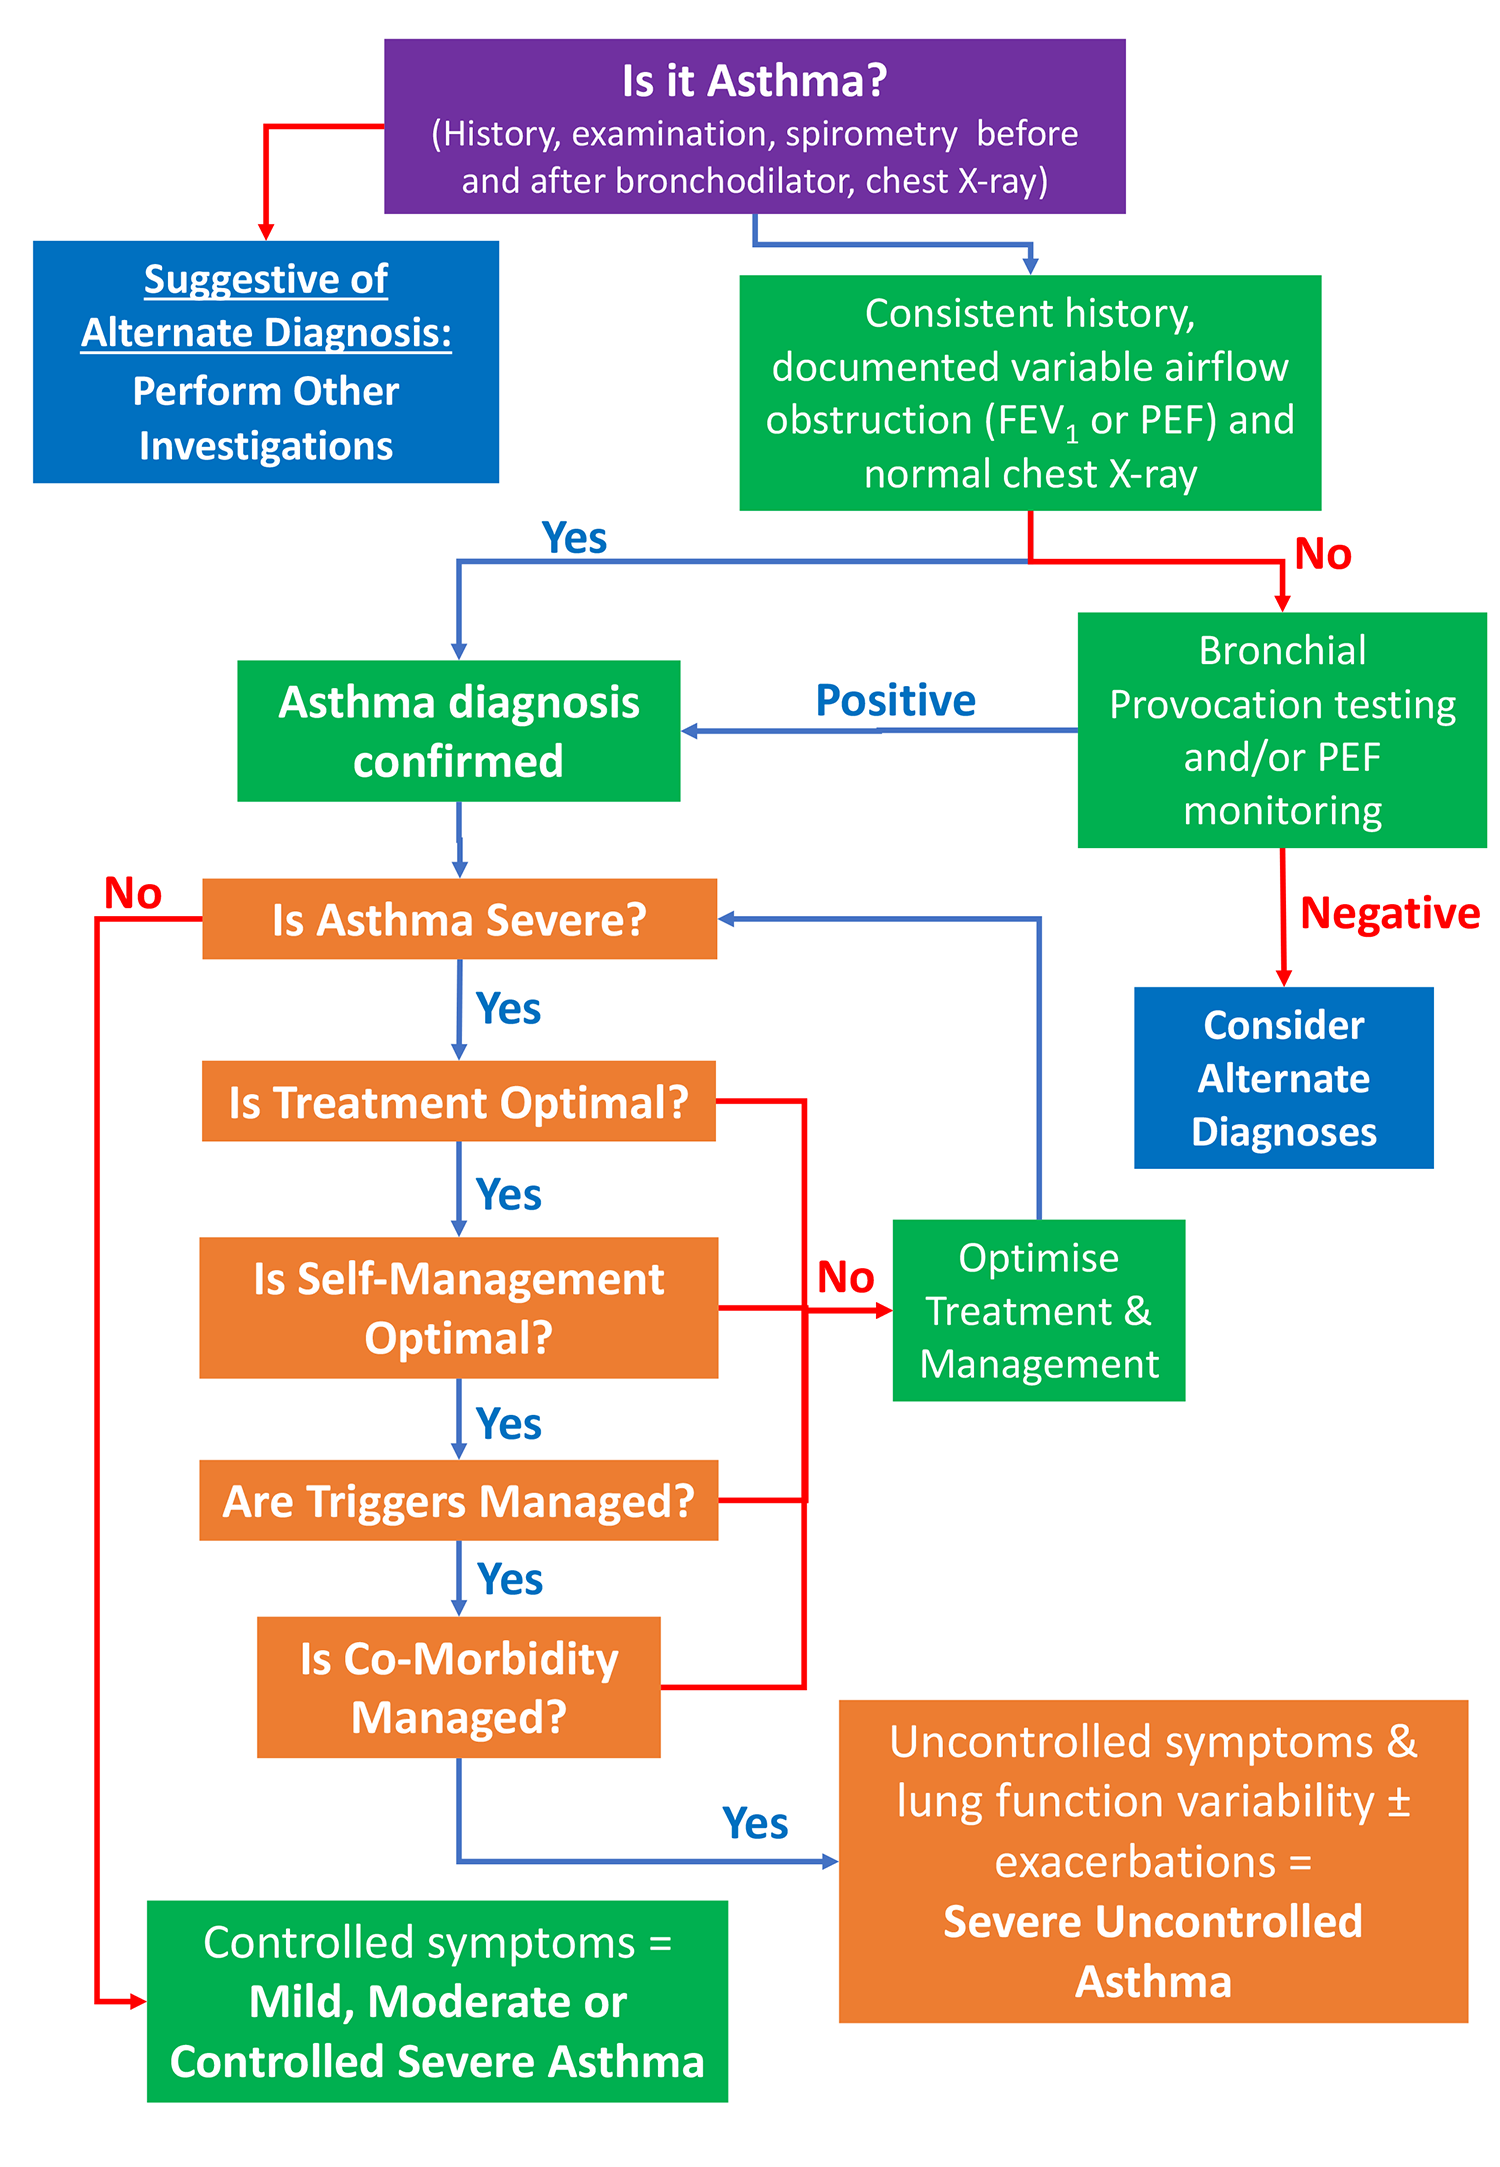 algorithm for severe asthma assessment and severe asthma diagnosis